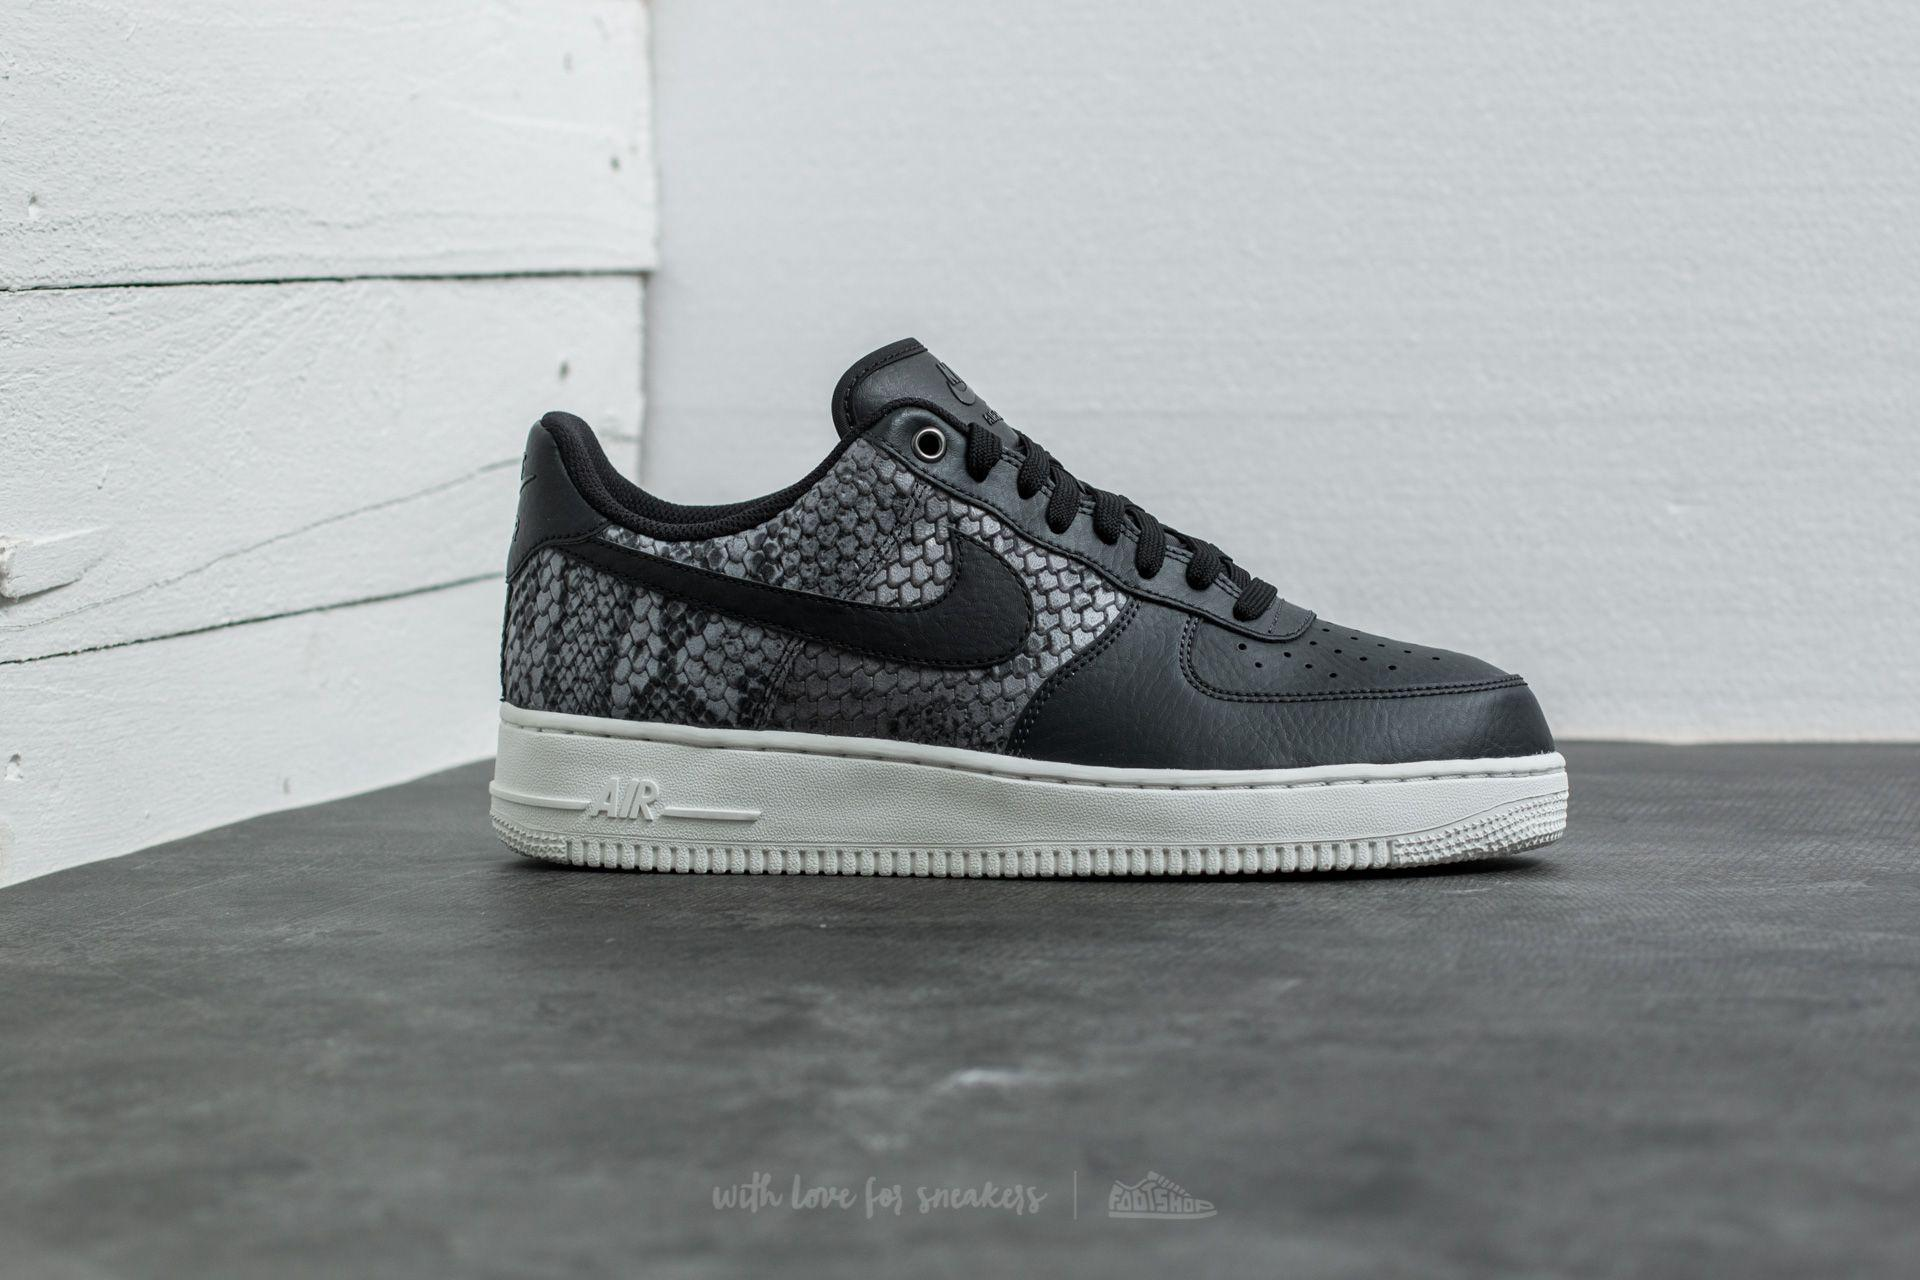 MEN'S NIKE AIR FORCE 1 07 LV8 SHOE - Anthracite/Black/Summit White